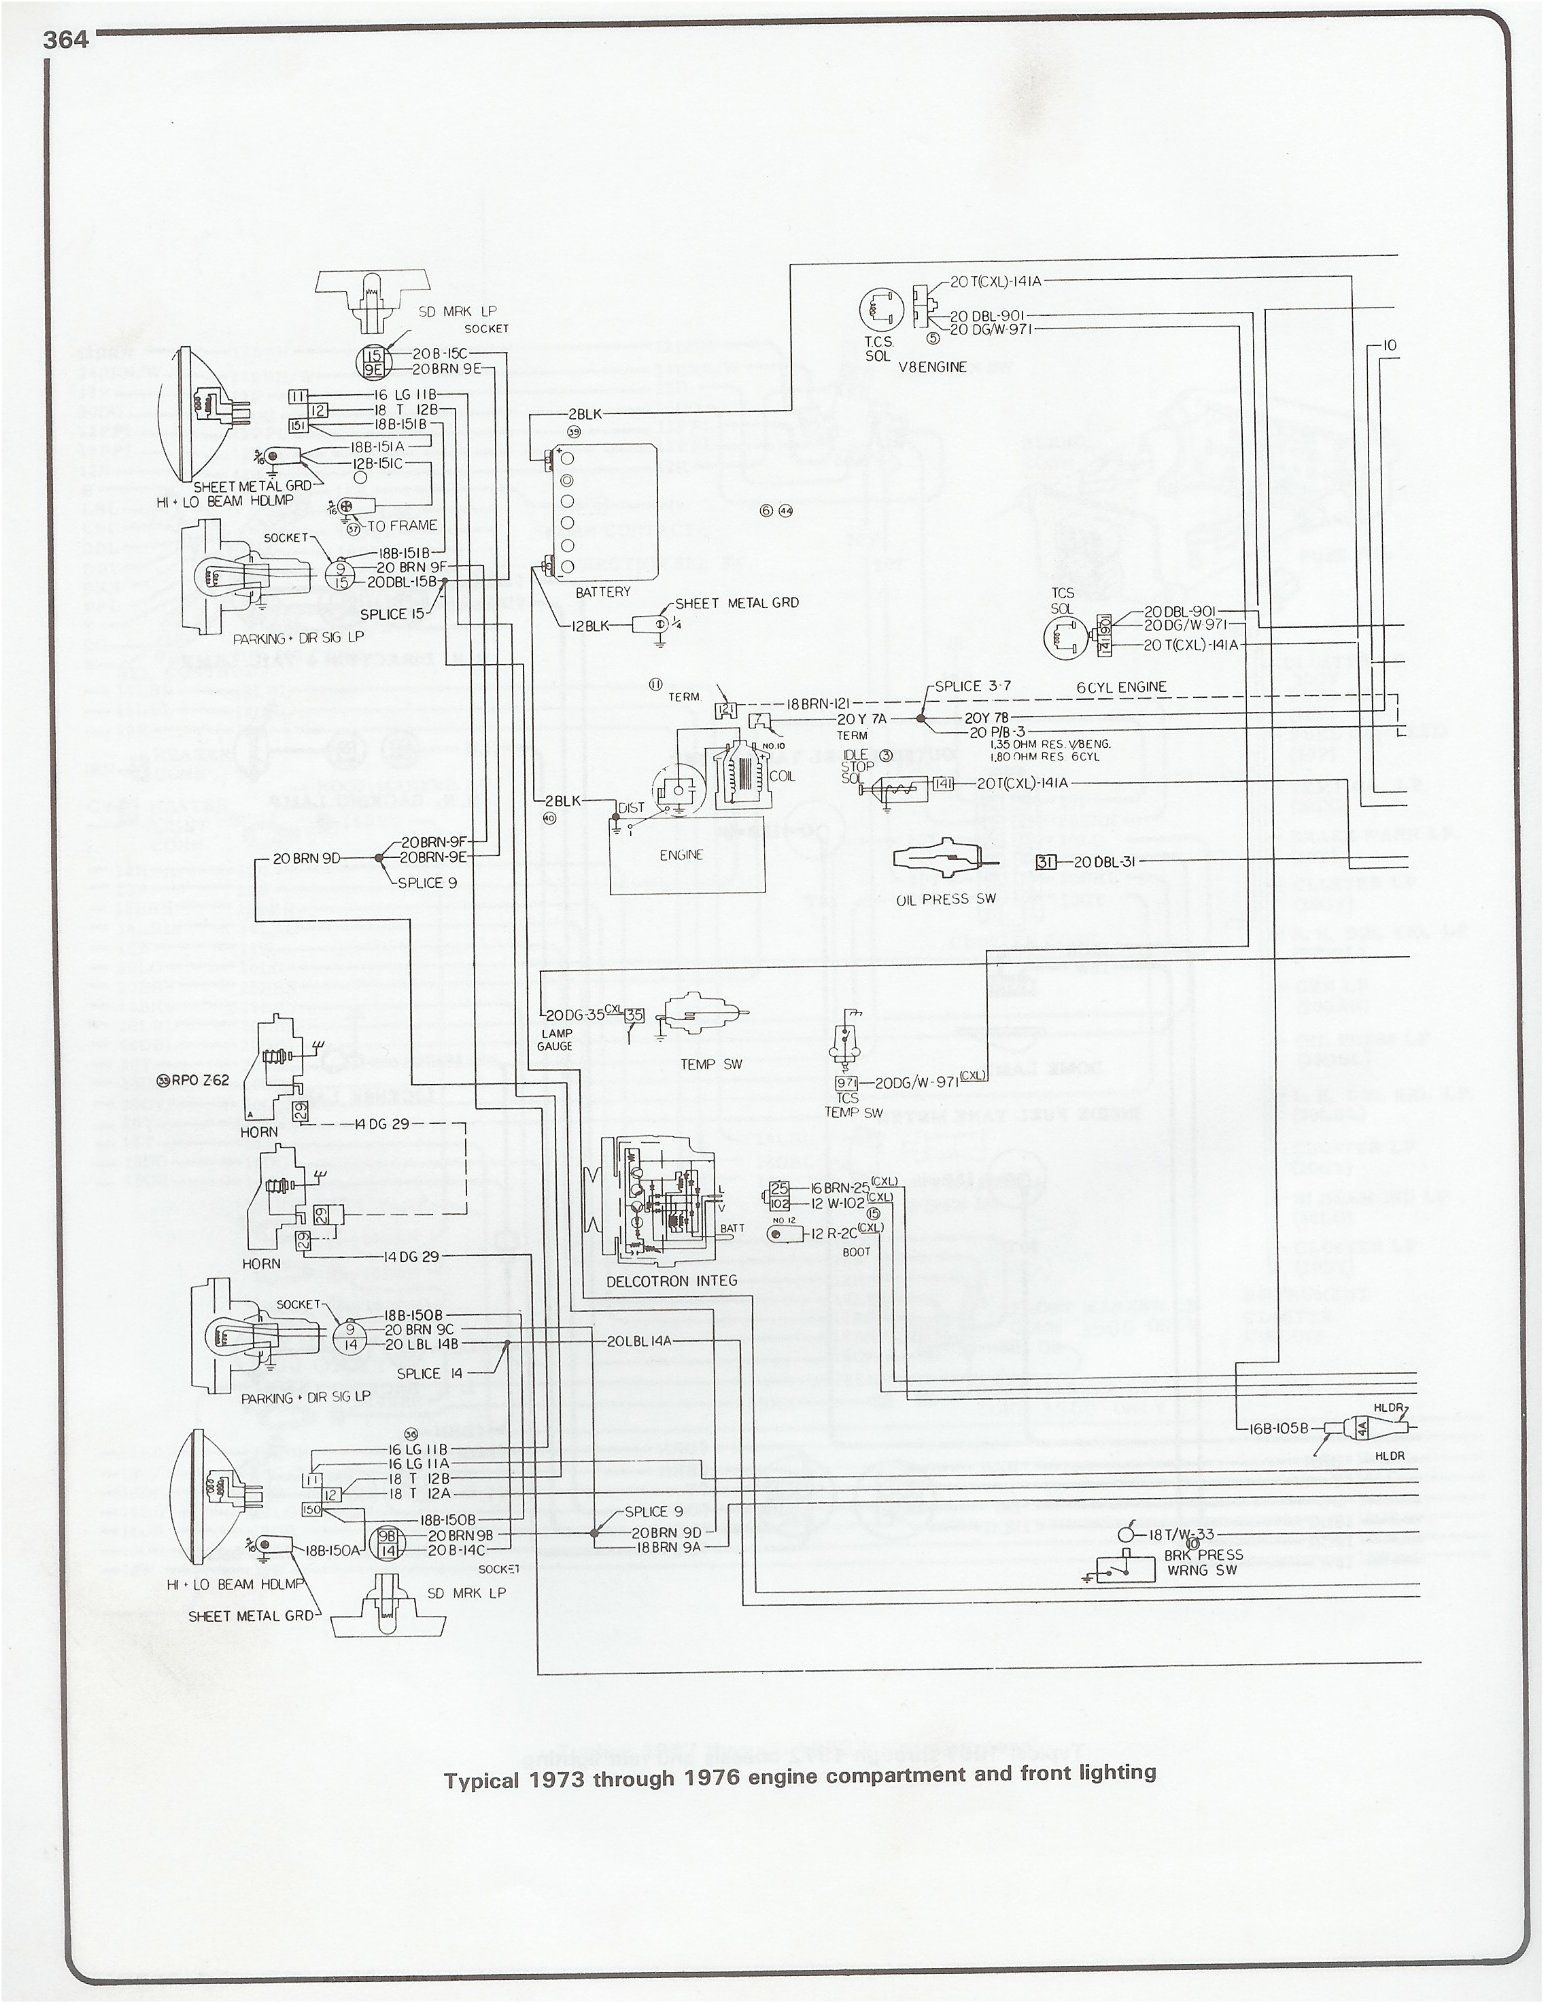 small resolution of 1977 chevy c10 alternator wiring wiring diagram expert 77 chevy truck alternator wiring 1976 chevy c10